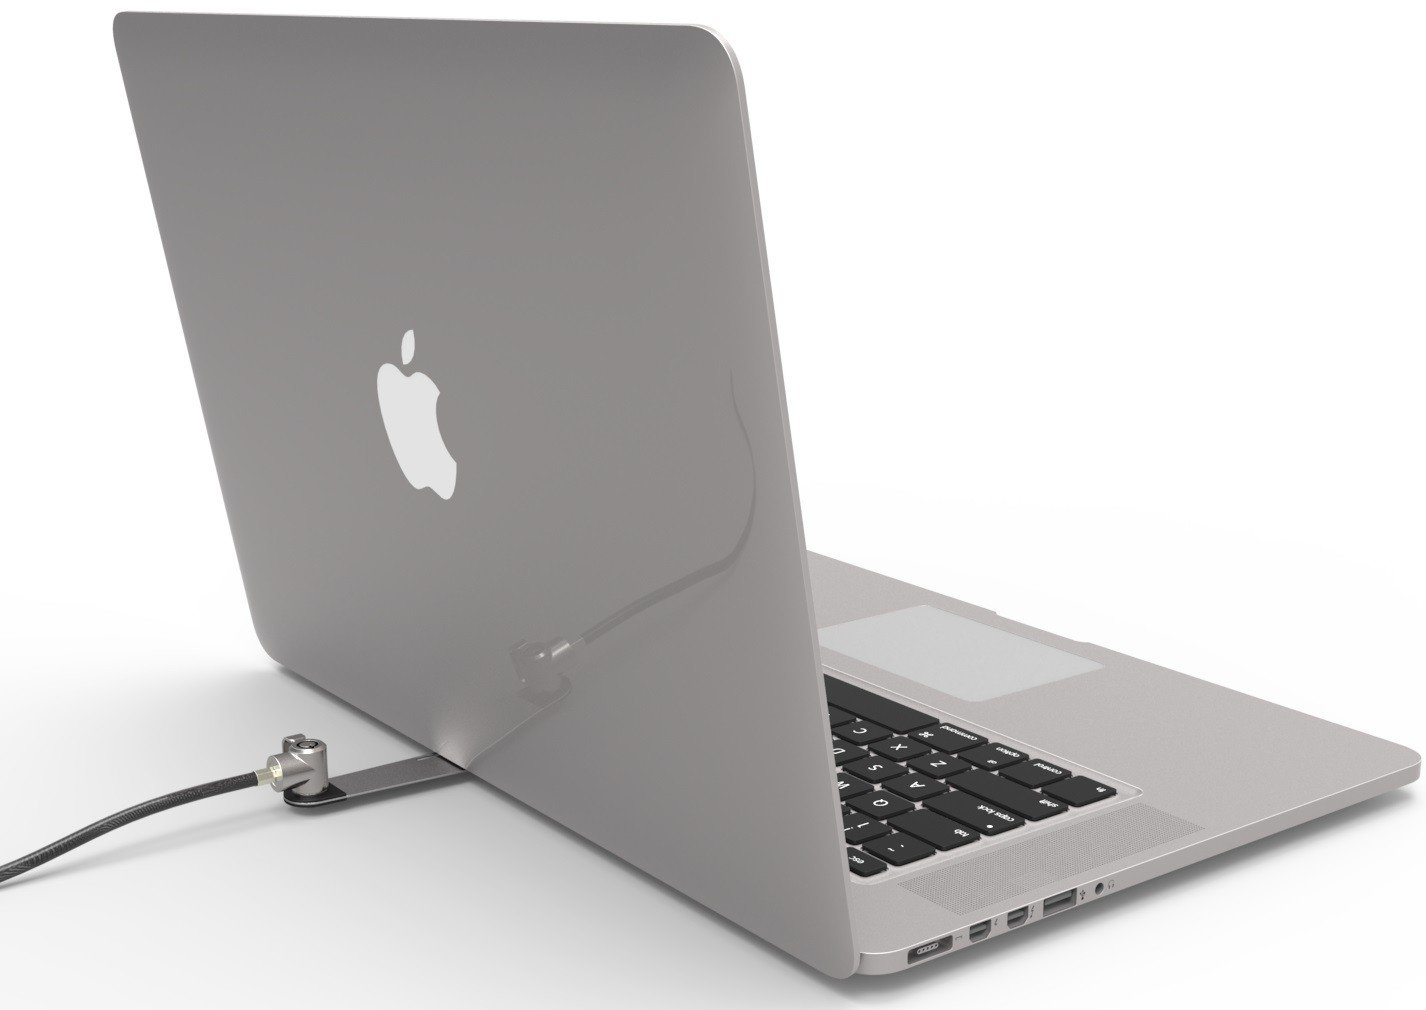 Maclocks BLD01KL Blade Universal Laptop and Tablet Bracket with Keyed Straight Cable Lock (Silver) by Compulocks (Image #8)